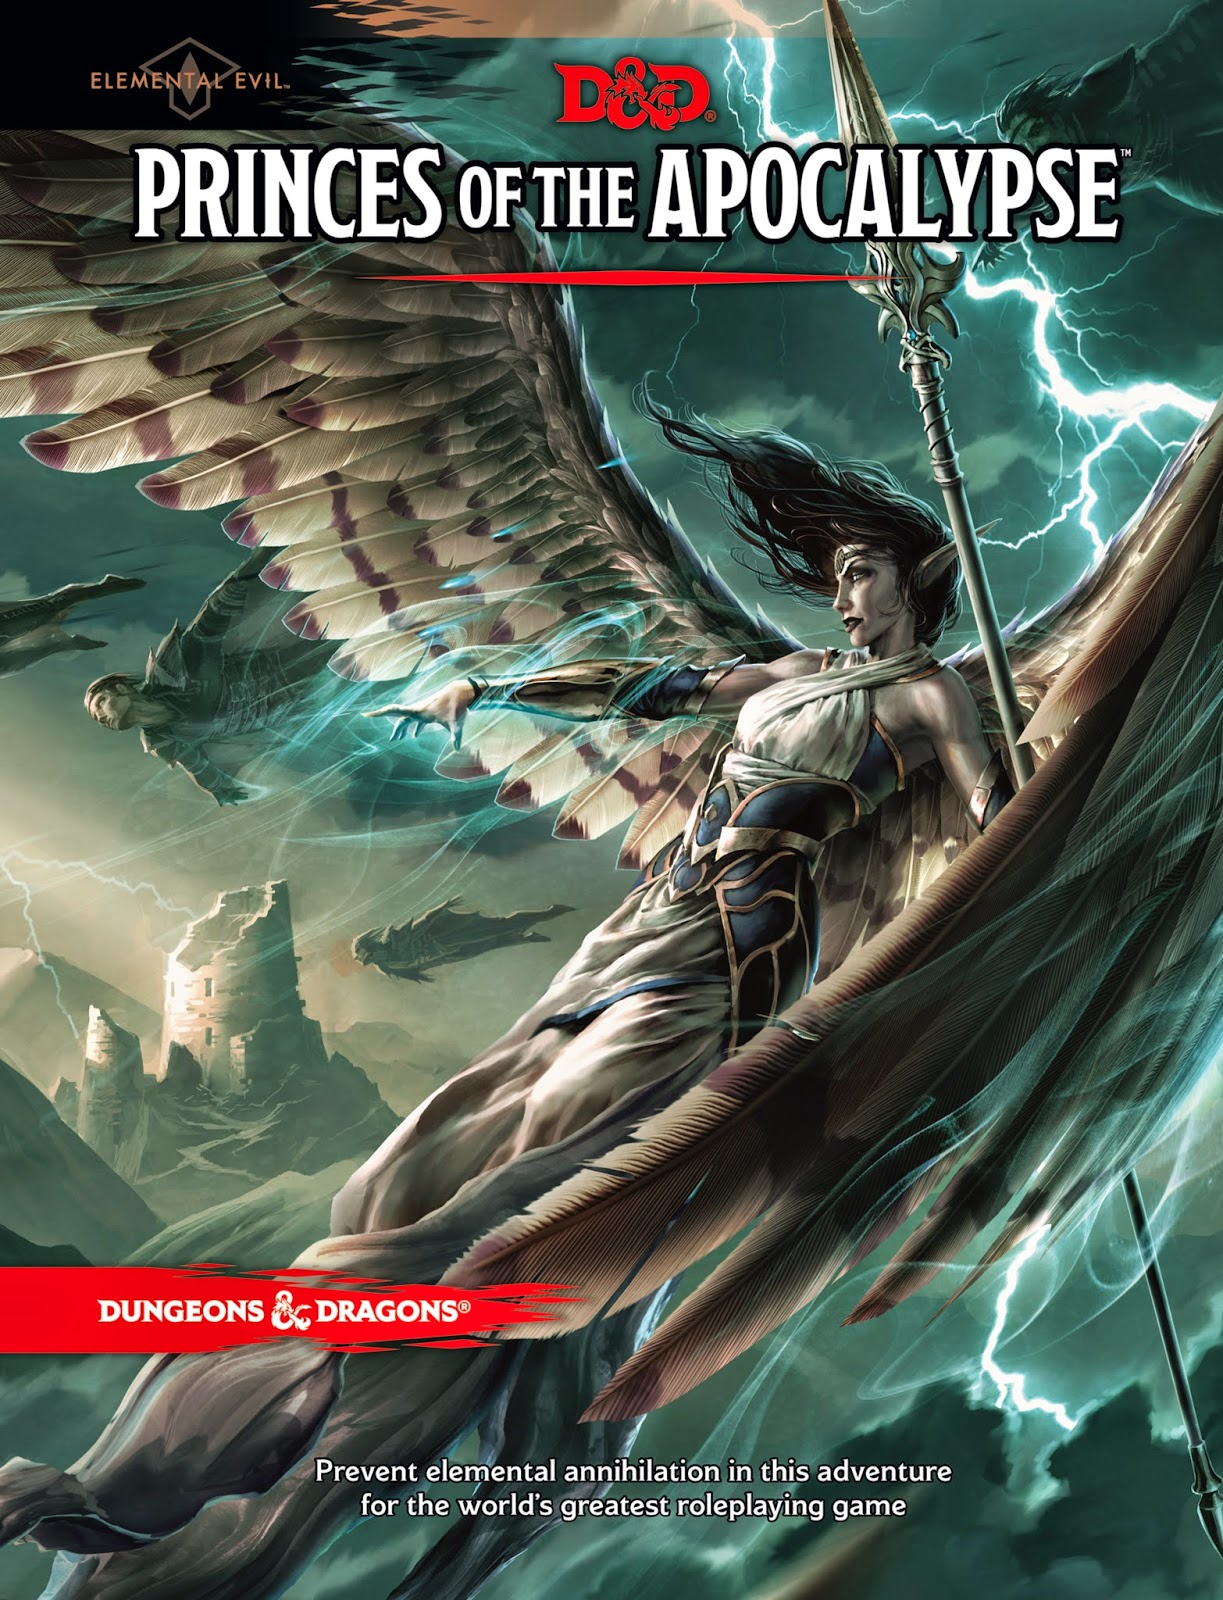 Front cover of the new Dungeons & Dragons adventure, Princes of the Apocalypse.